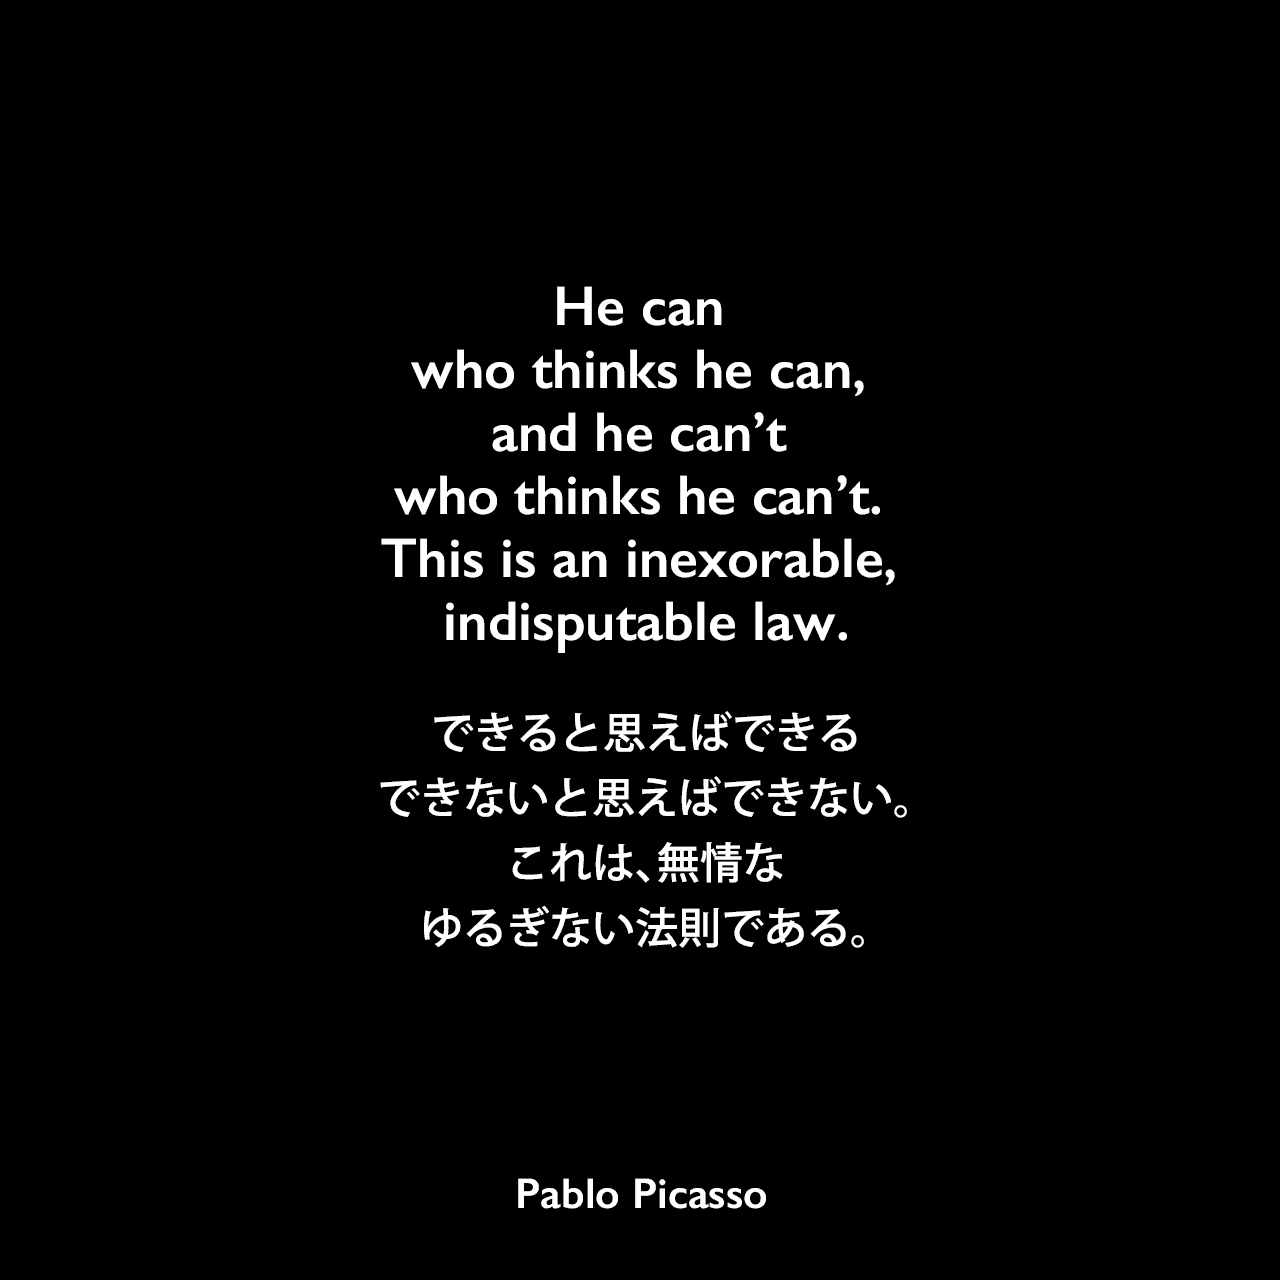 He can who thinks he can, and he can't who thinks he can't. This is an inexorable, indisputable law.できると思えばできる、できないと思えばできない。これは、無情なゆるぎない法則である。Pablo Picasso